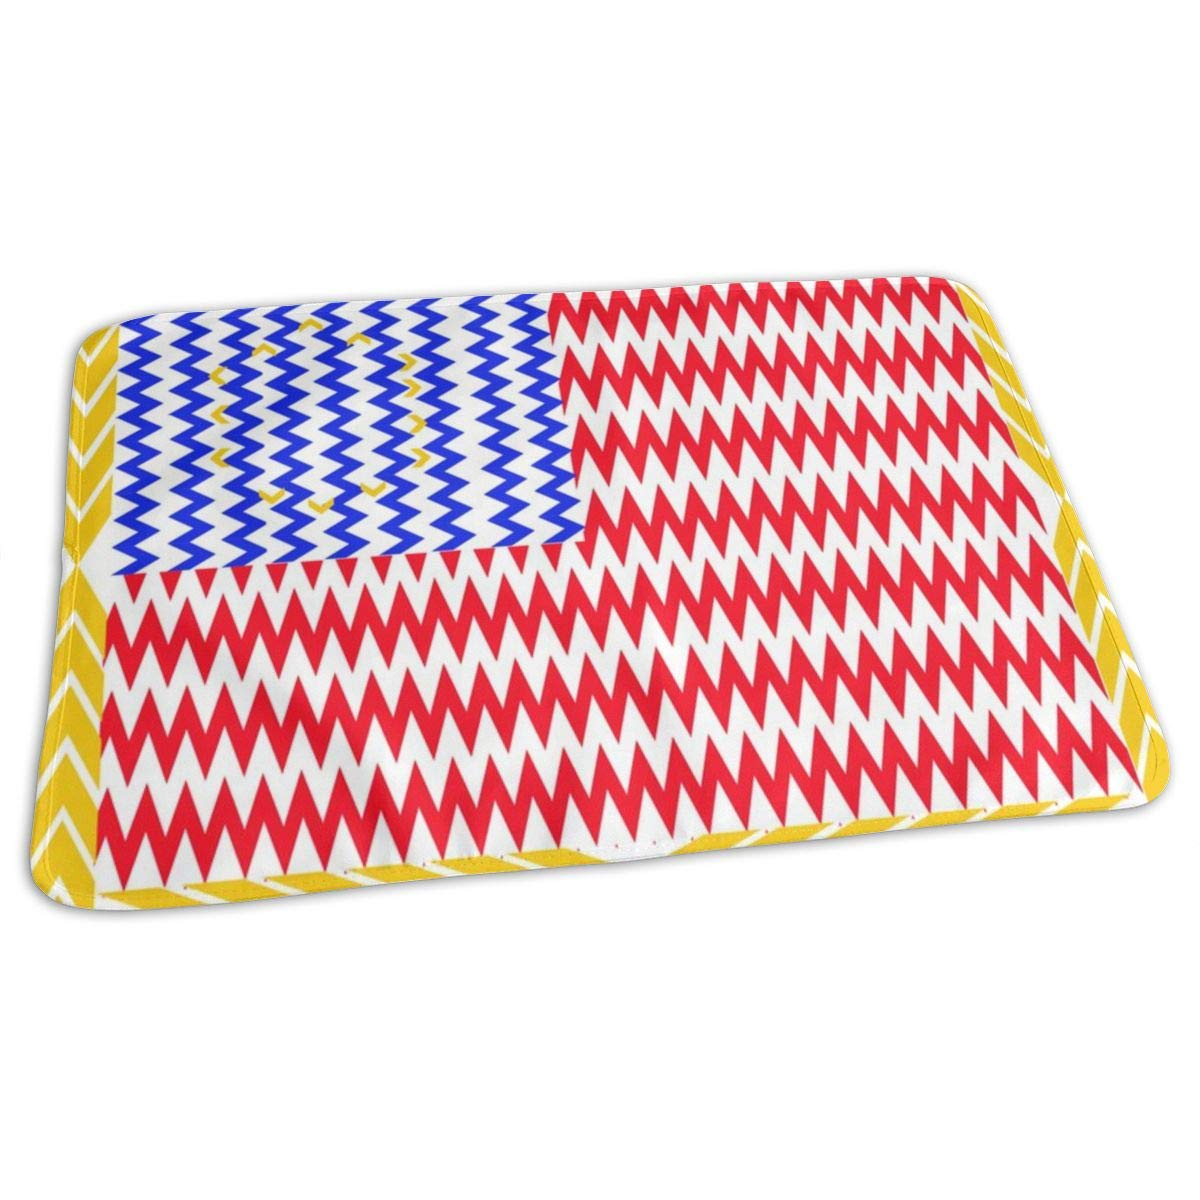 Chevron Stars And Stripes Baby Portable Reusable Changing Pad Mat 19.7x27.5 inch